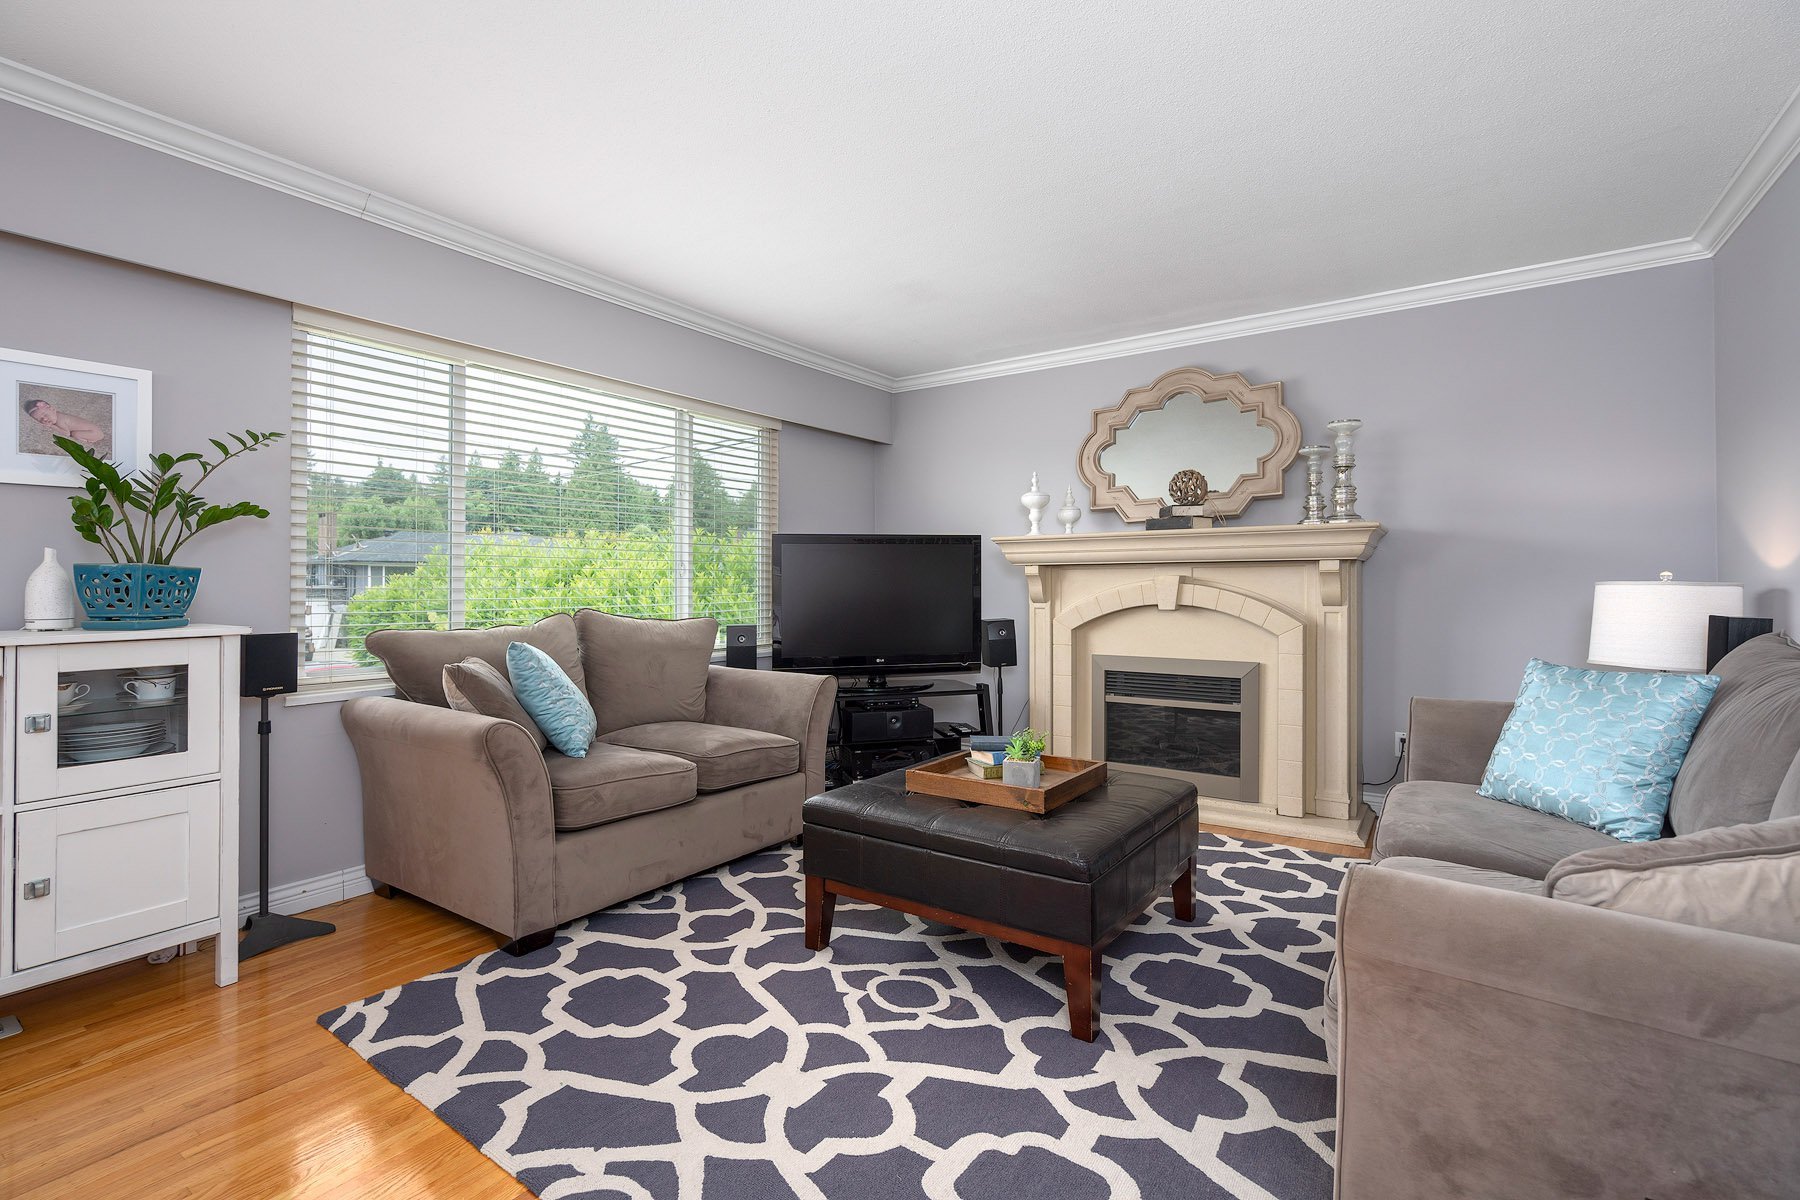 Photo 4: Photos: 423 MONTGOMERY Street in Coquitlam: Central Coquitlam House for sale : MLS®# R2380693